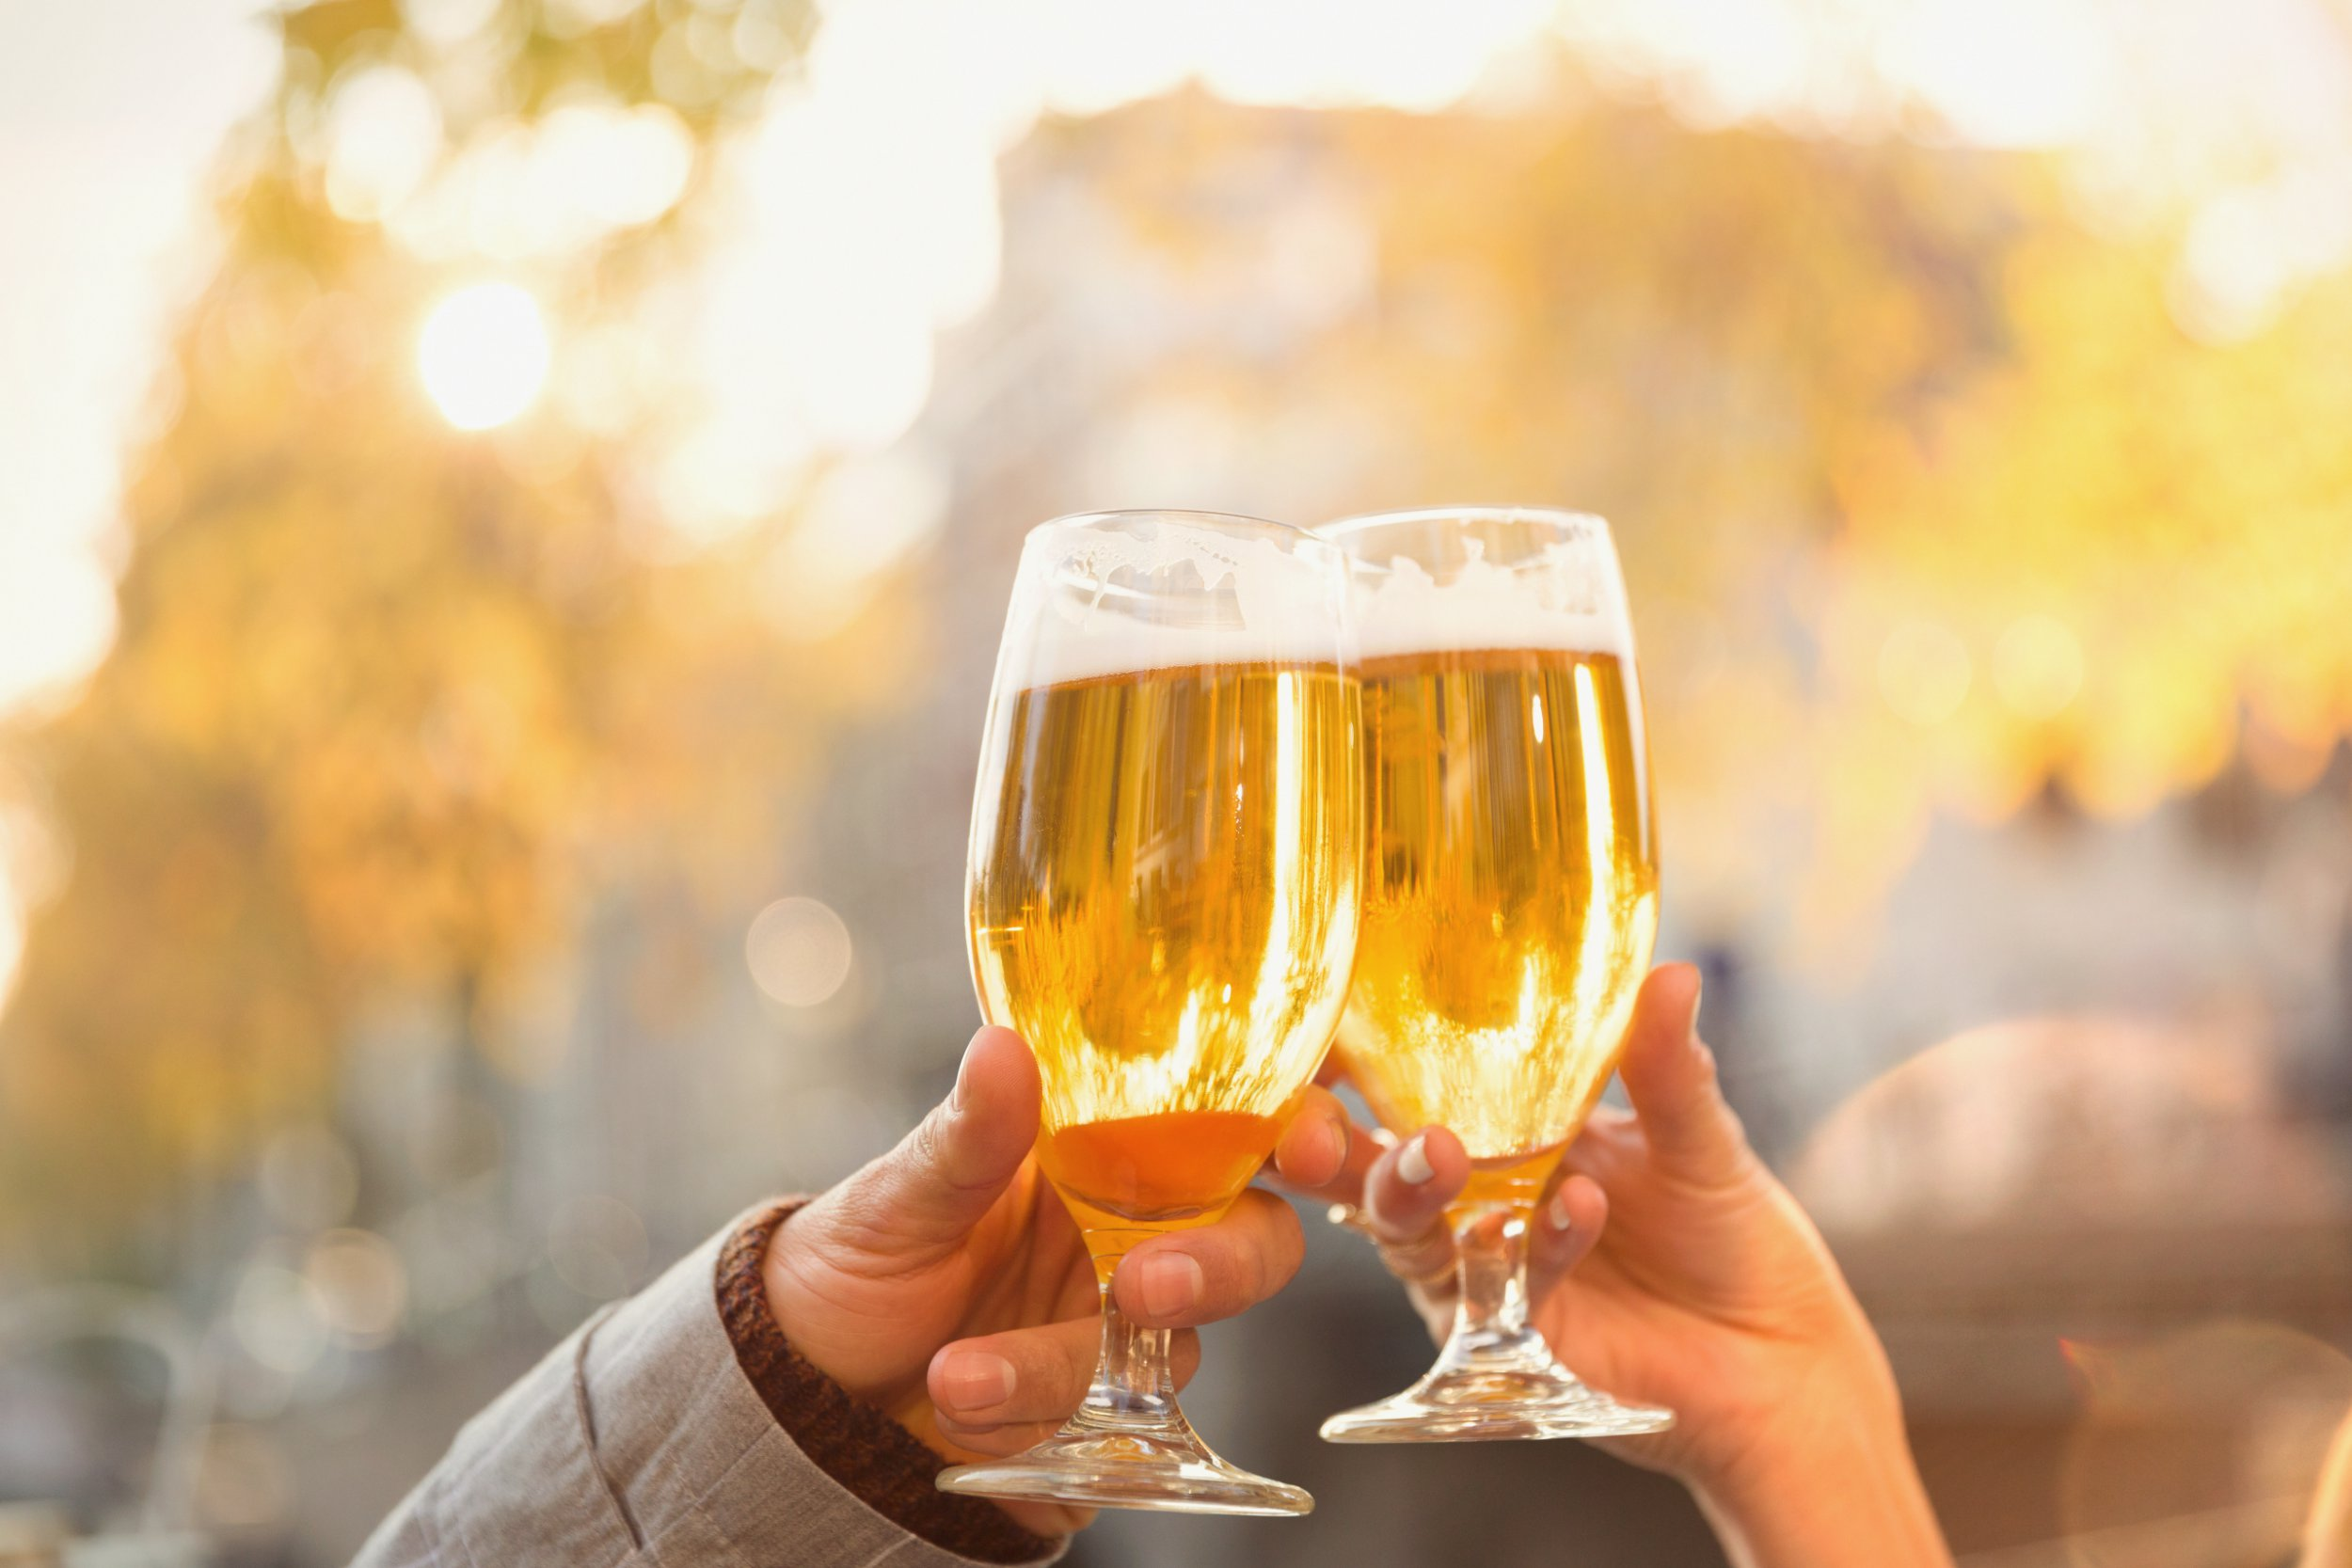 Beer company will pay you £1000 to fly you to Belgium to drink beer and chill